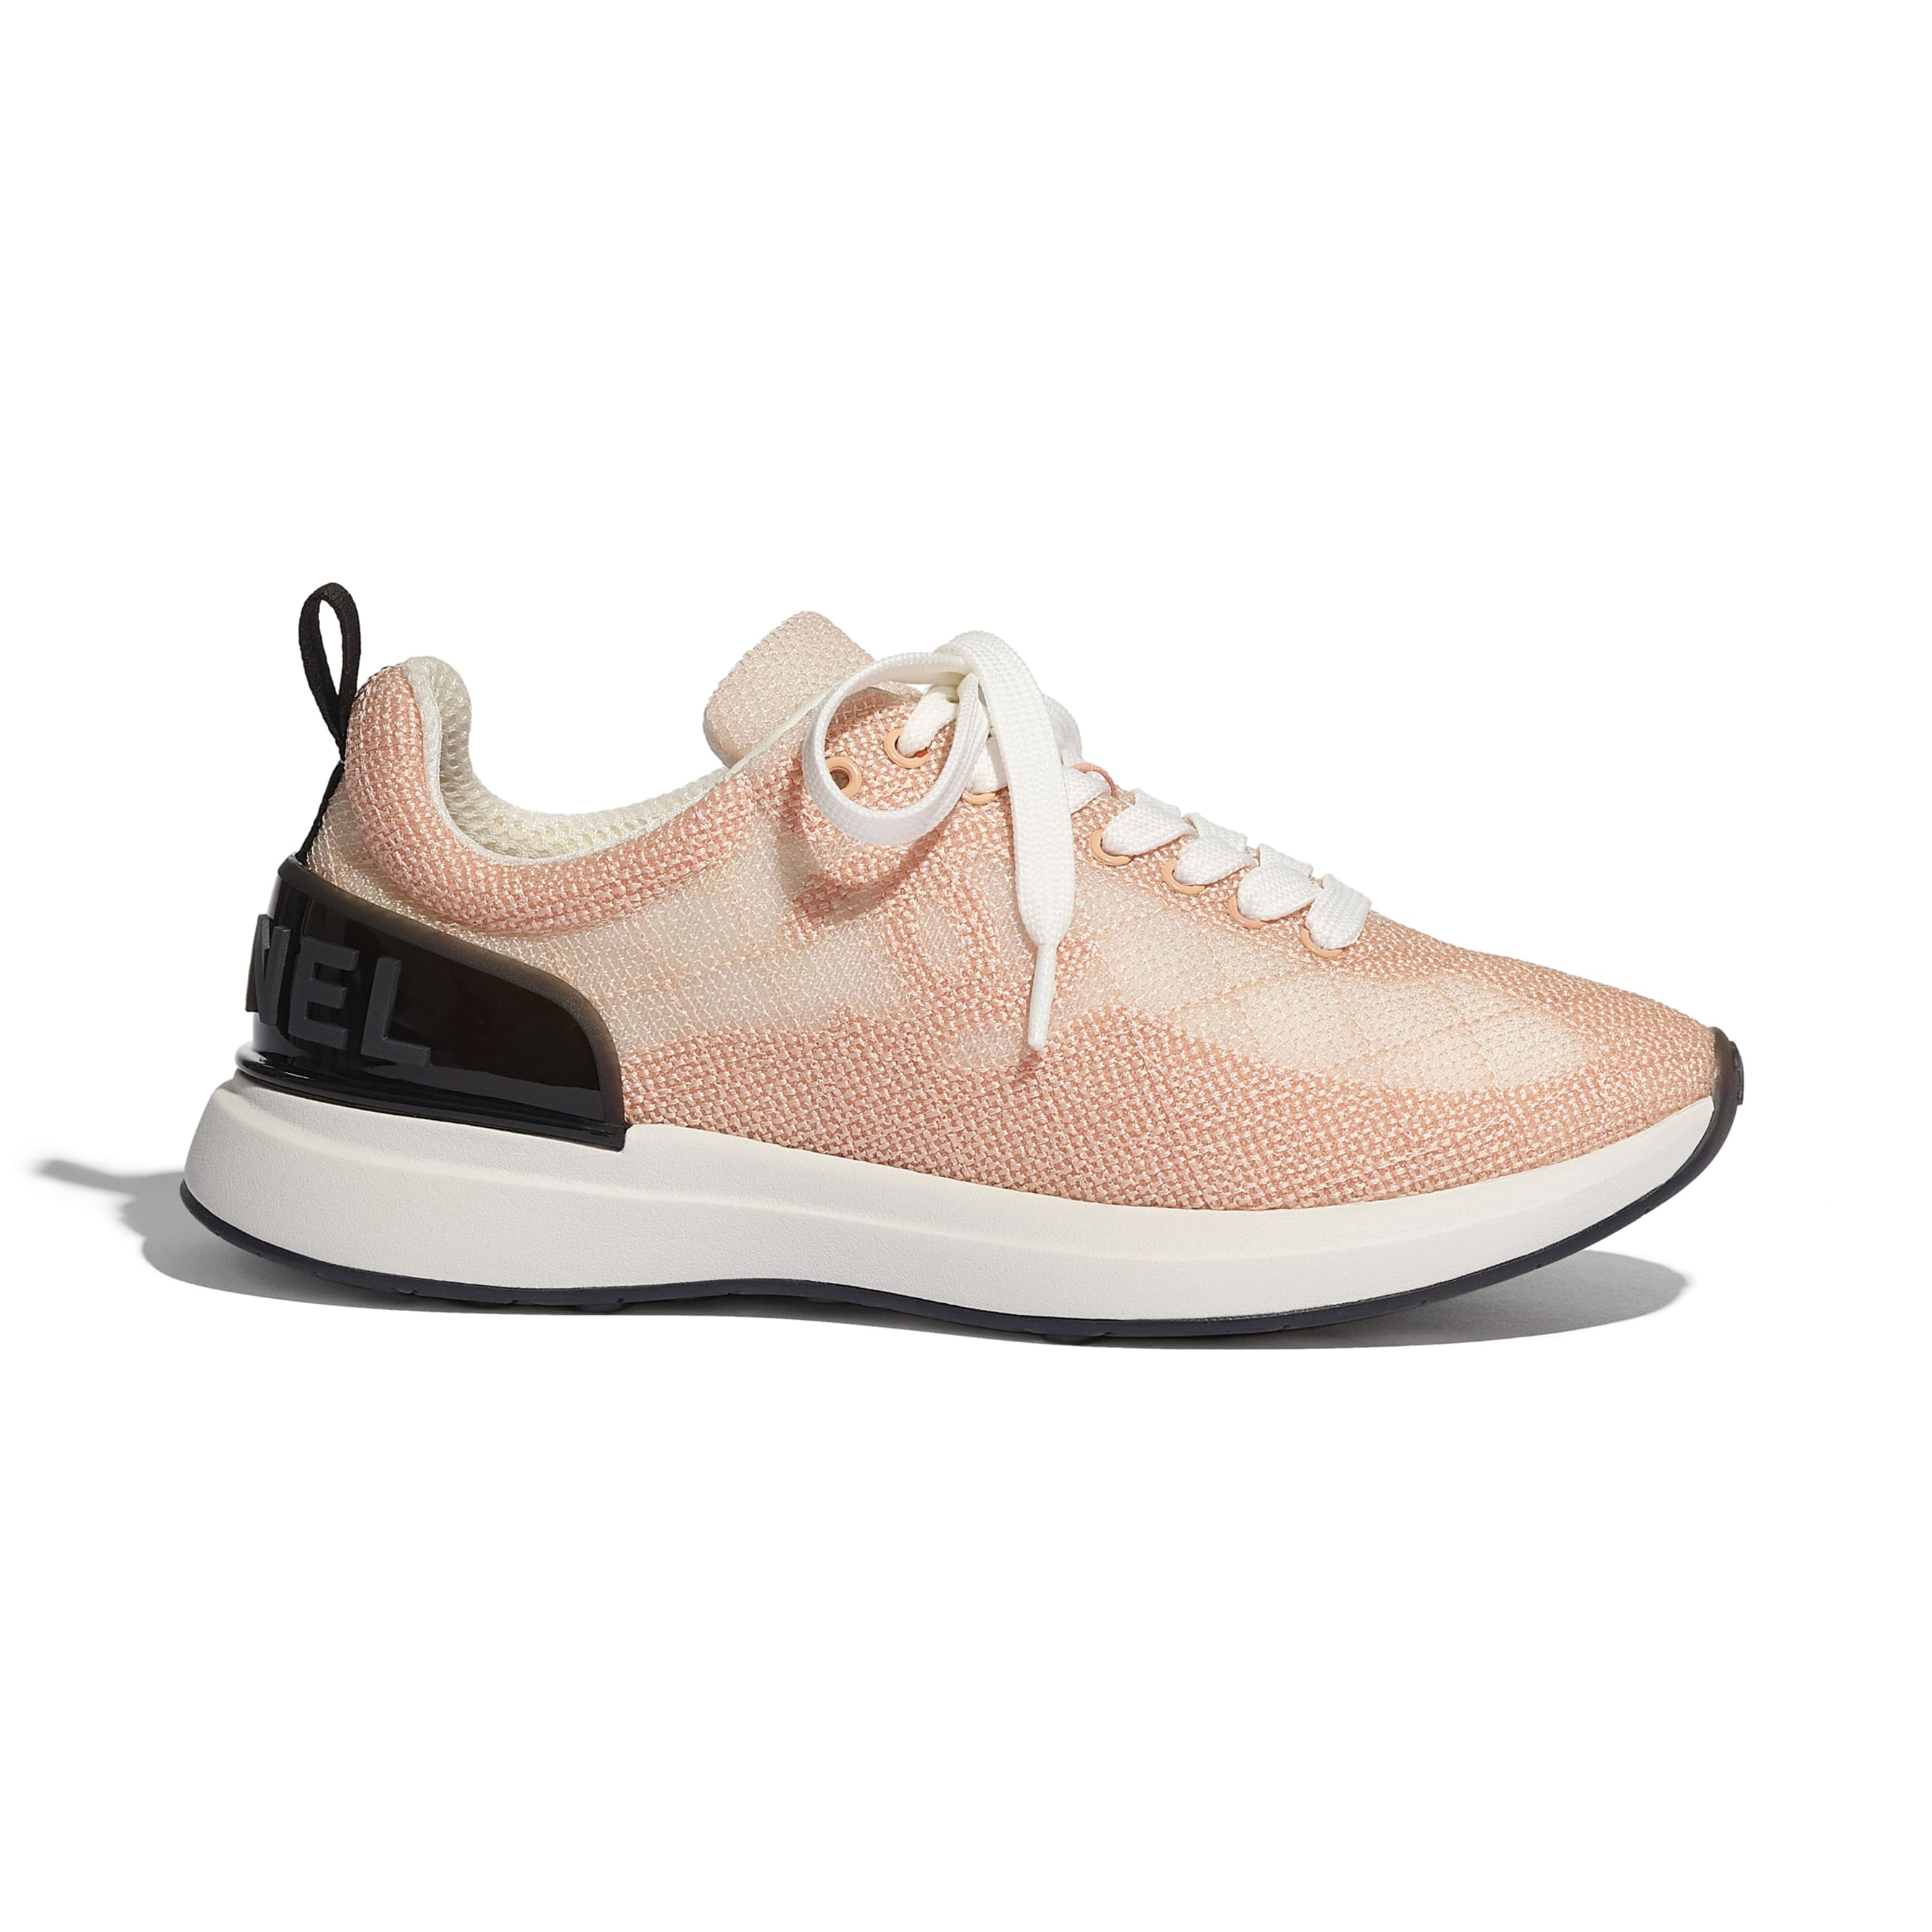 Sneakers - Pale Pink - Embroidered Mesh - CHANEL - Default view - see standard sized version